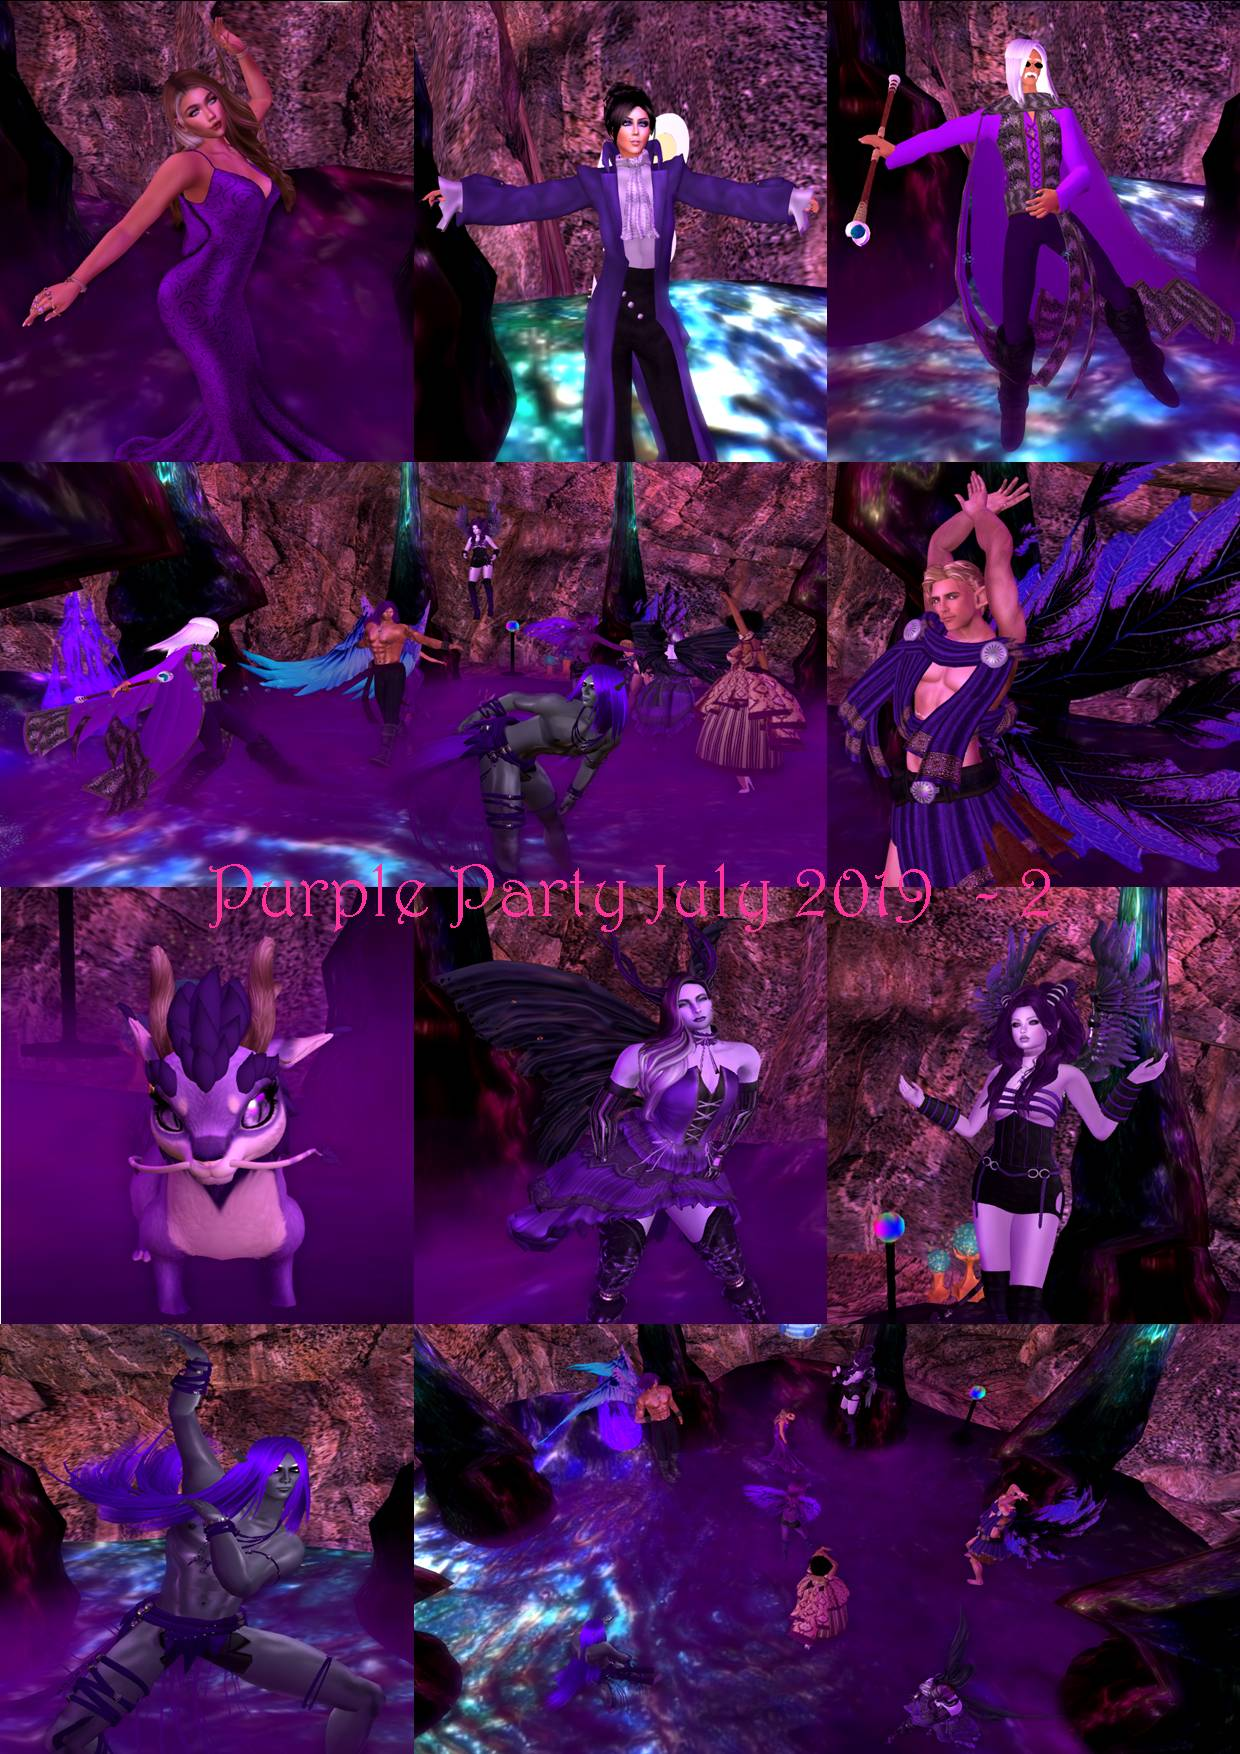 PURPLE PARTY COLLAGE JULY 2019 - 2